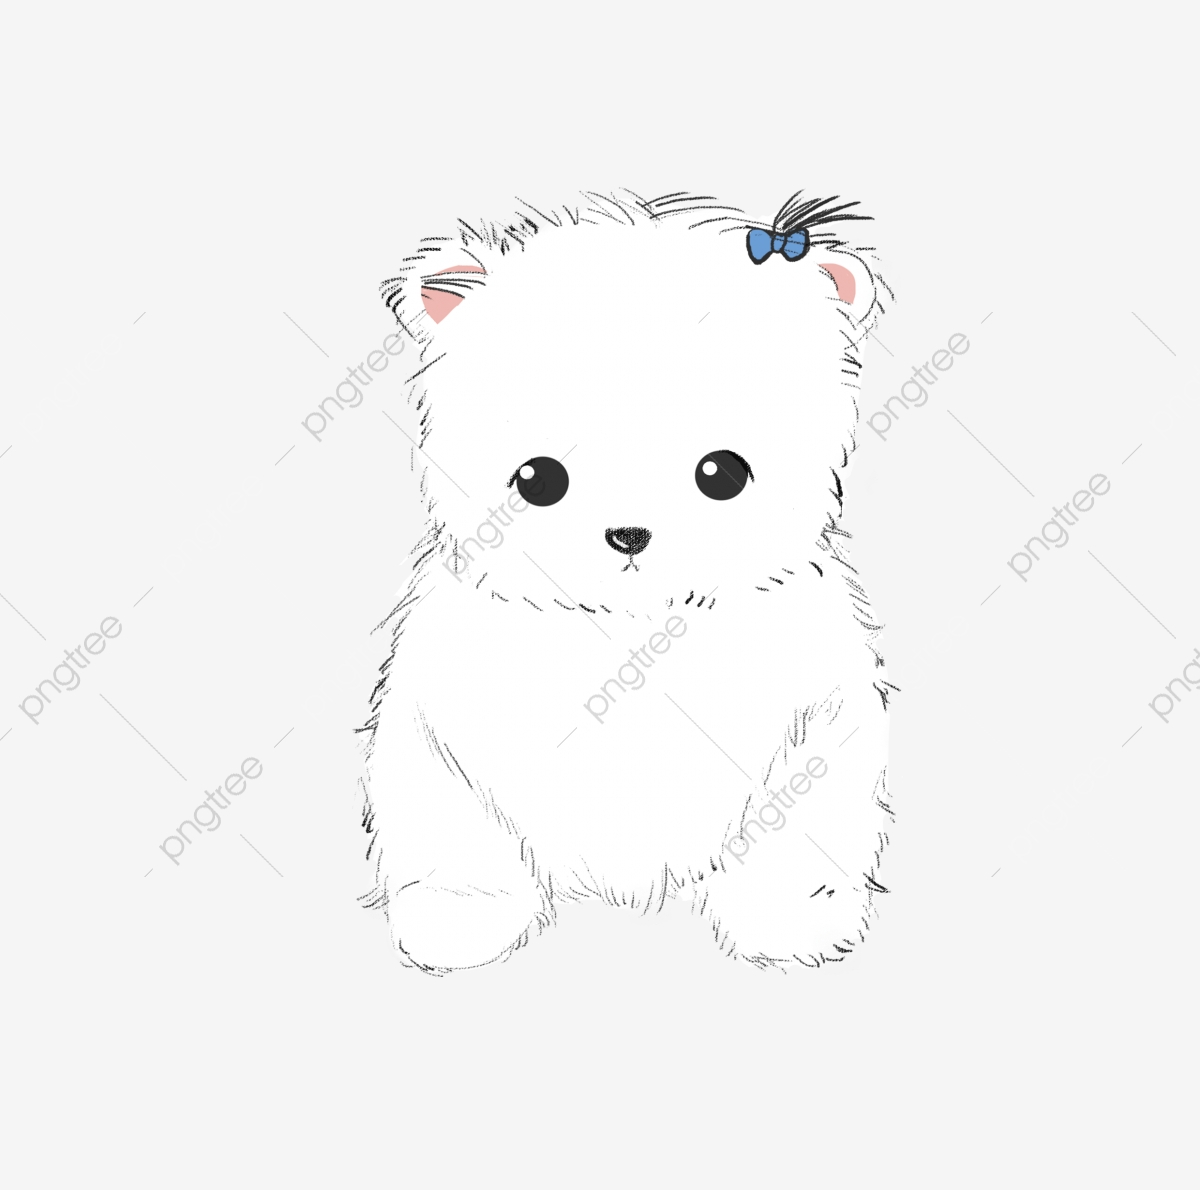 White Puppy Beautiful Puppy Cute Dog Hand Drawn Puppy Puppy Illustration Sprouting Puppy Blue Card Png Transparent Clipart Image And Psd File For Free Download